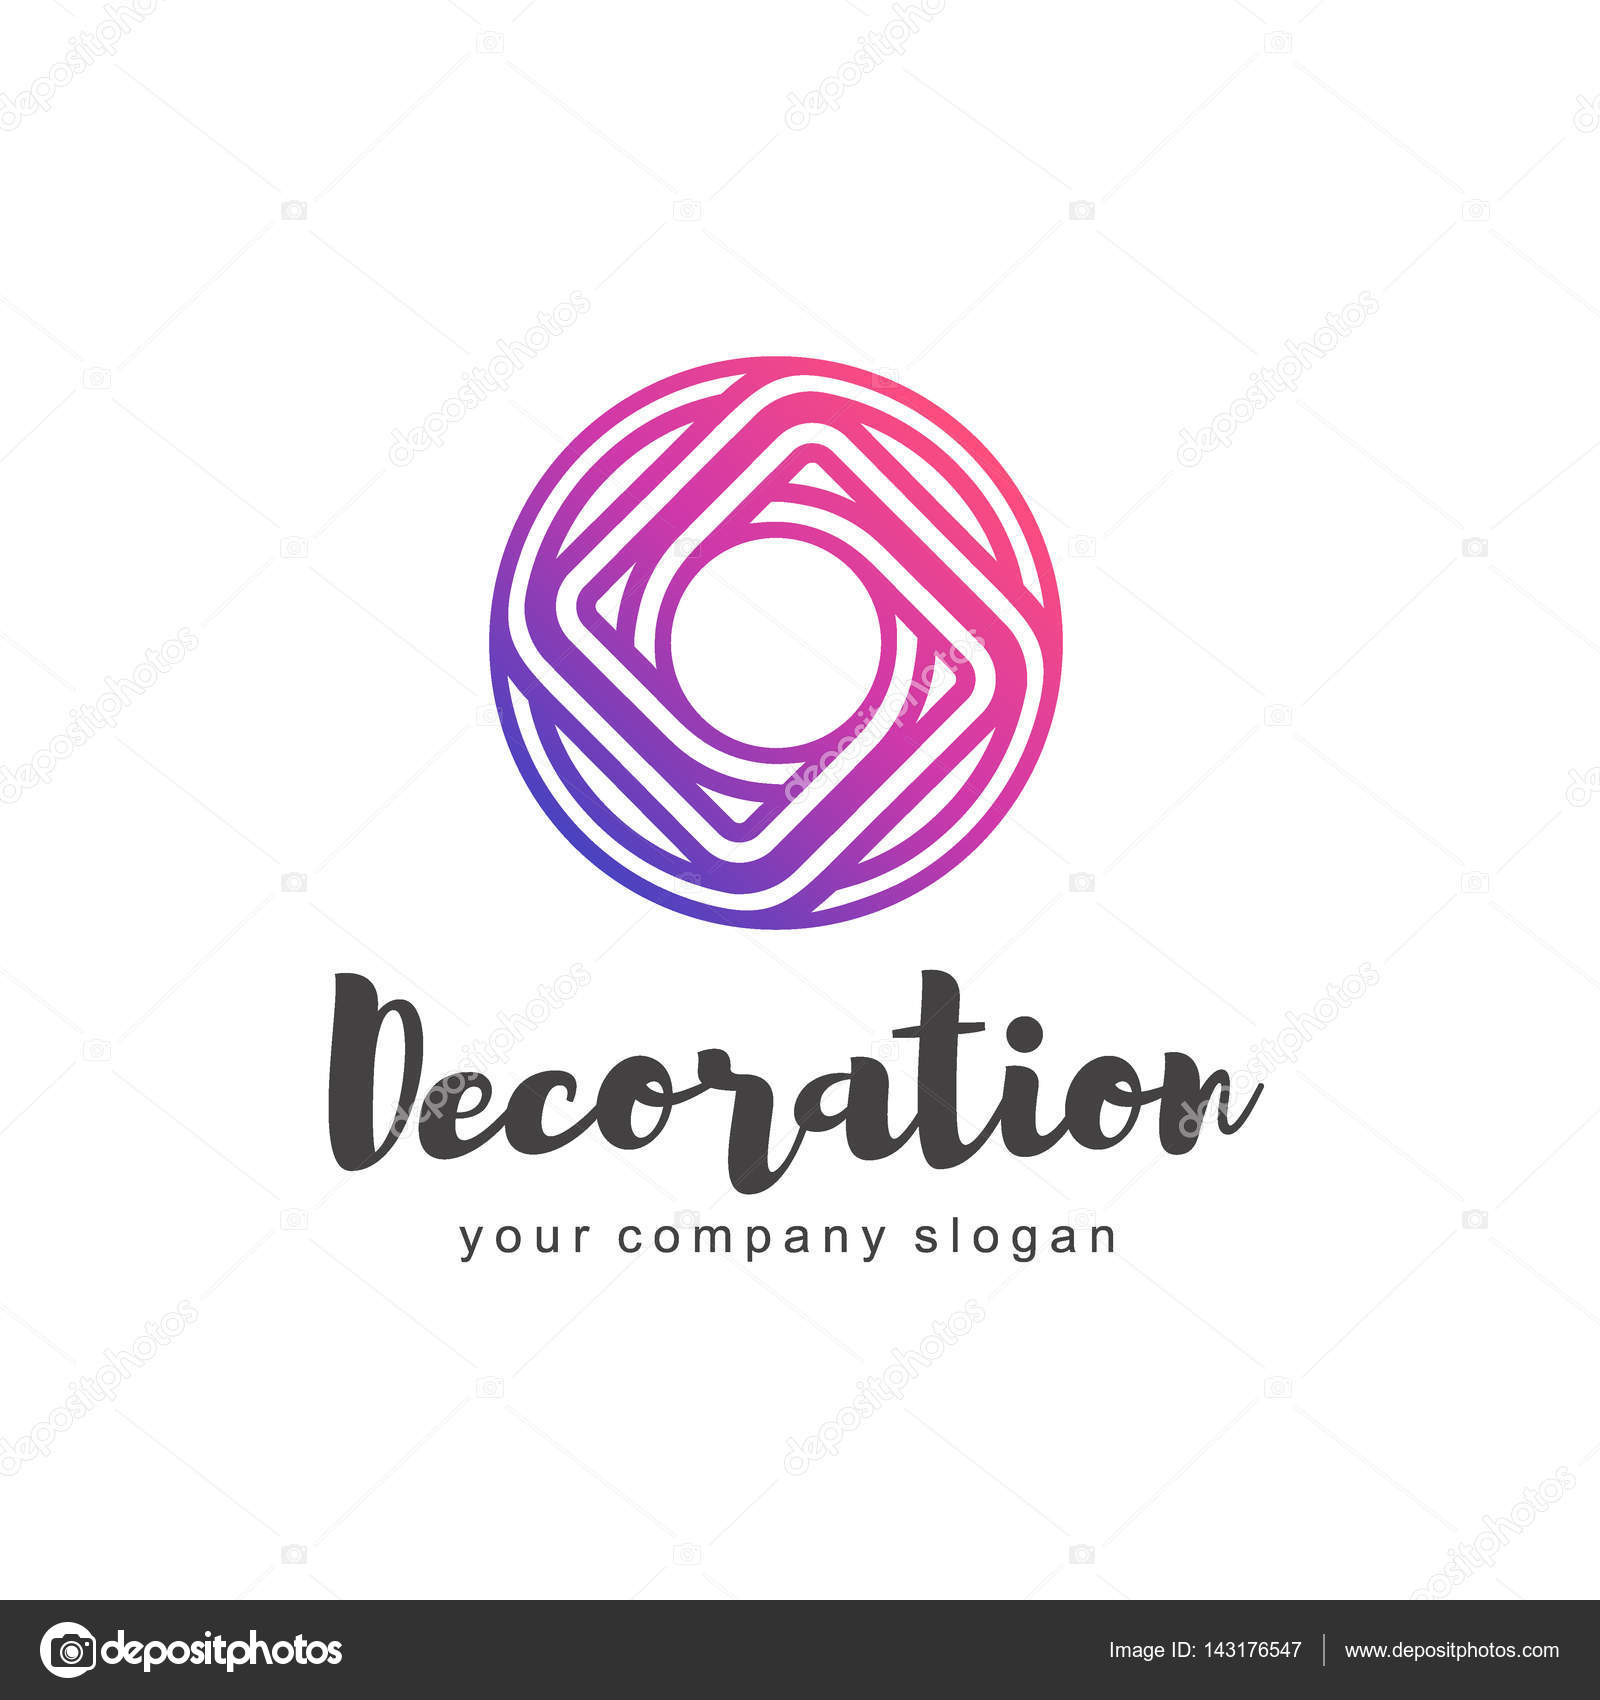 Im genes decoracion vectorial logotipo vectorial para for Tiendas de muebles y decoracion